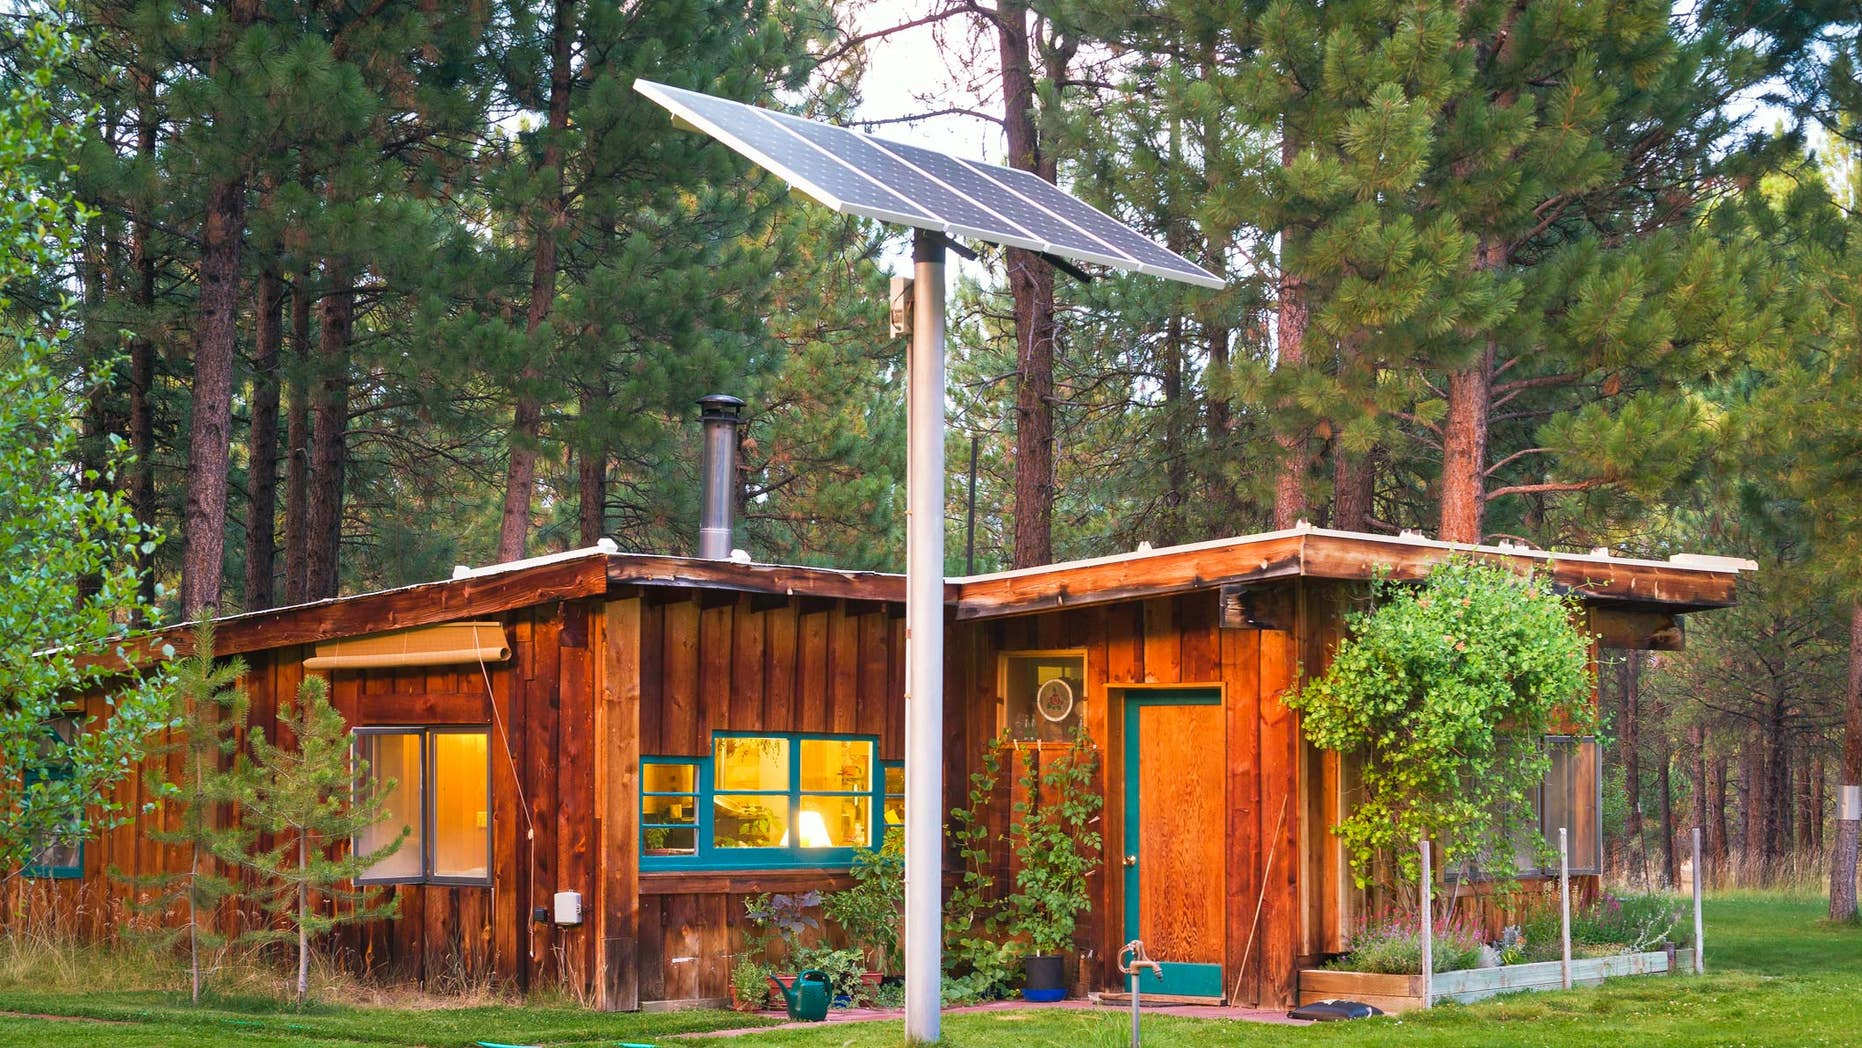 rural house with solar panels